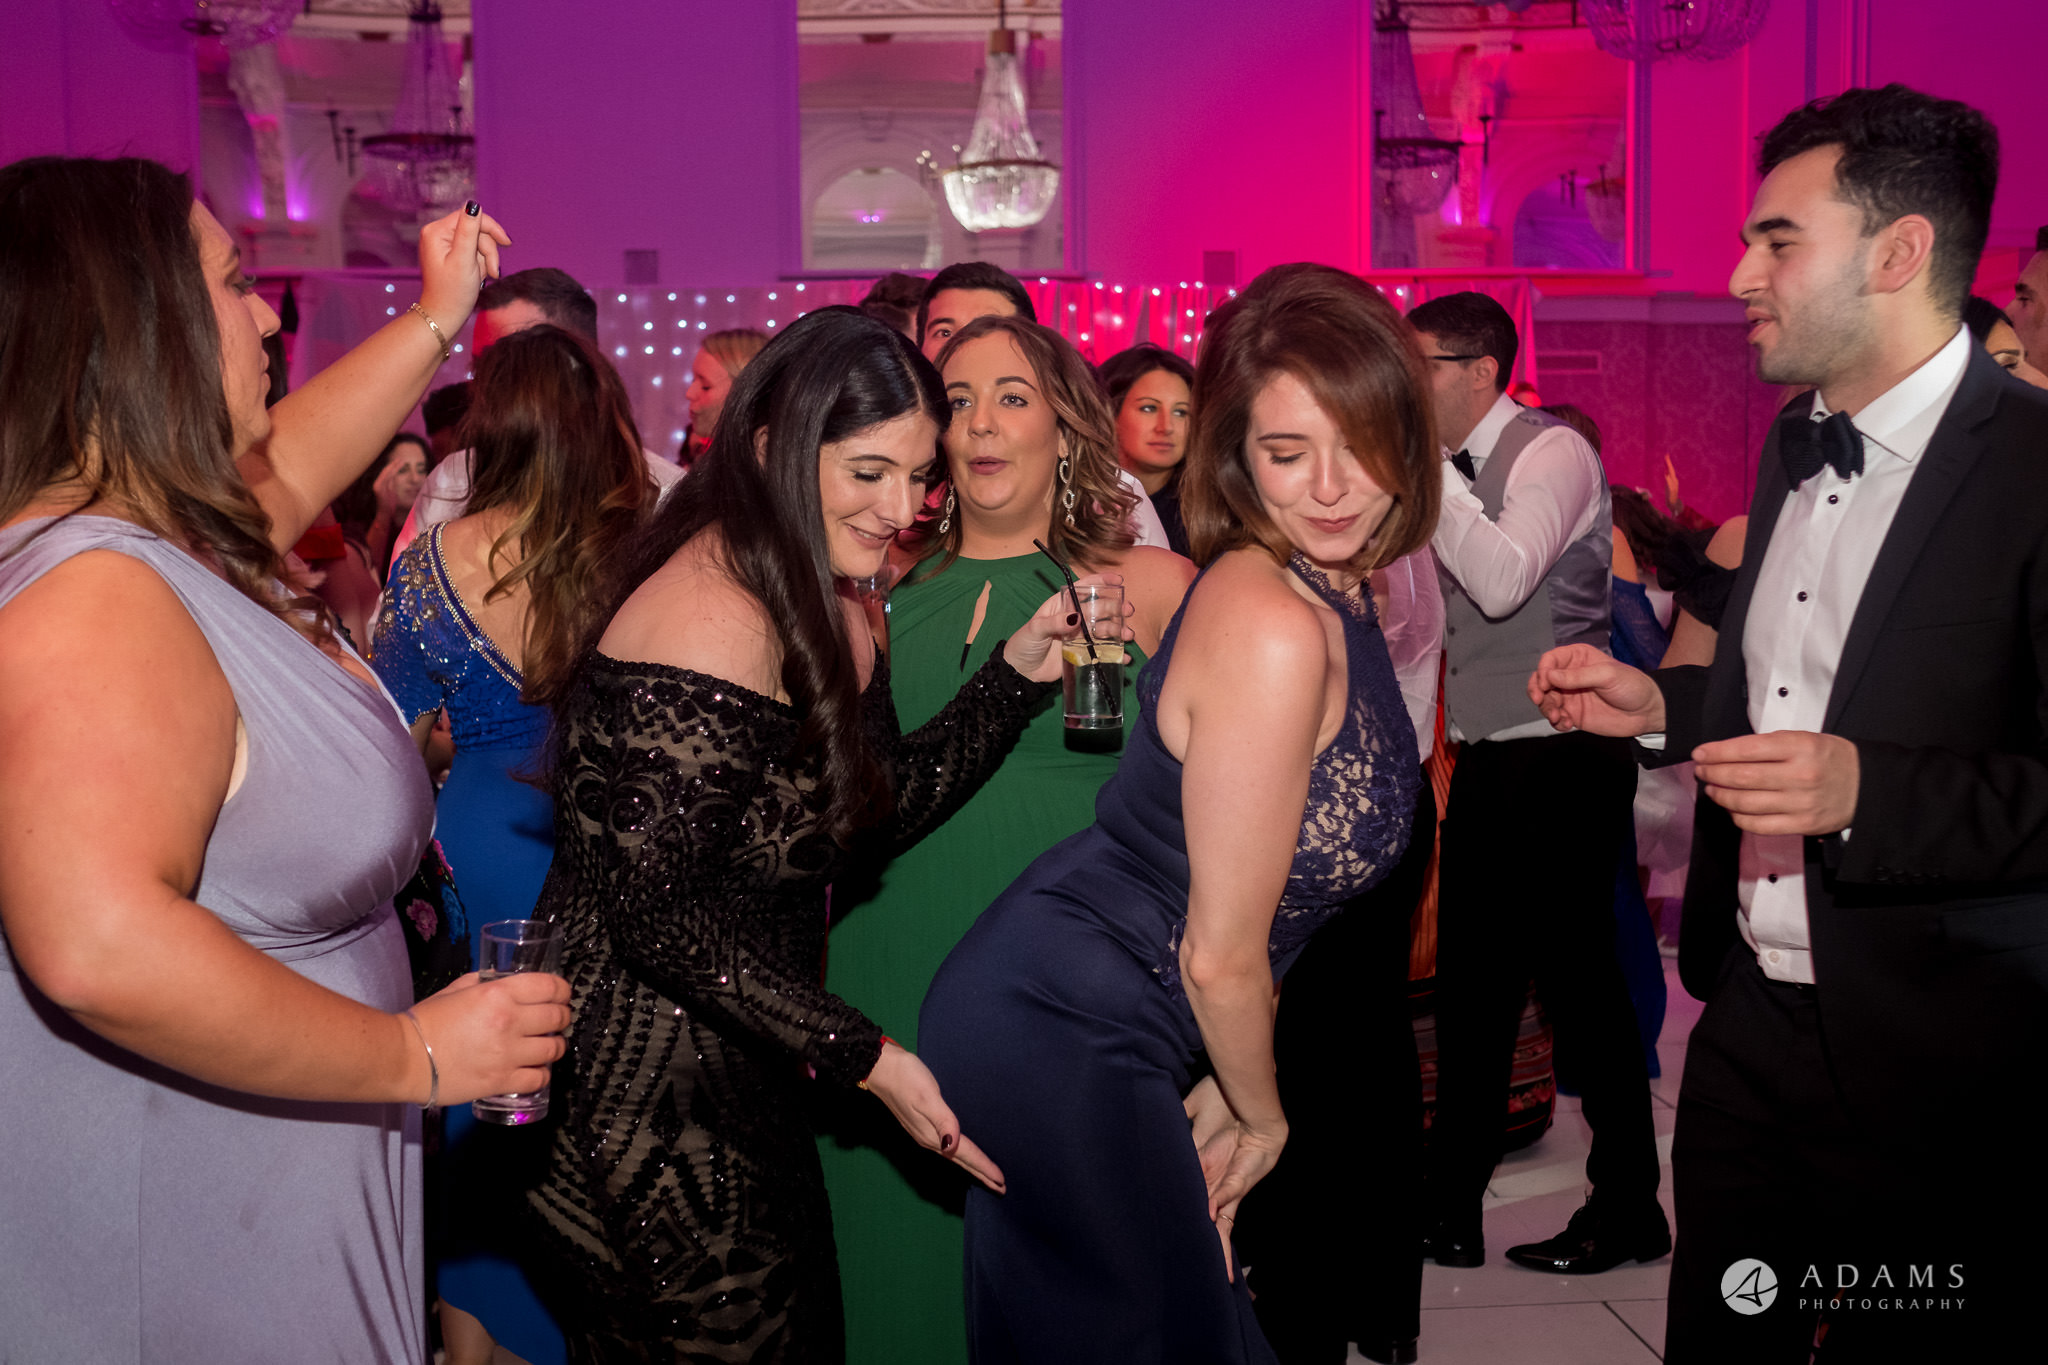 Grand connaught rooms wedding guests dancing